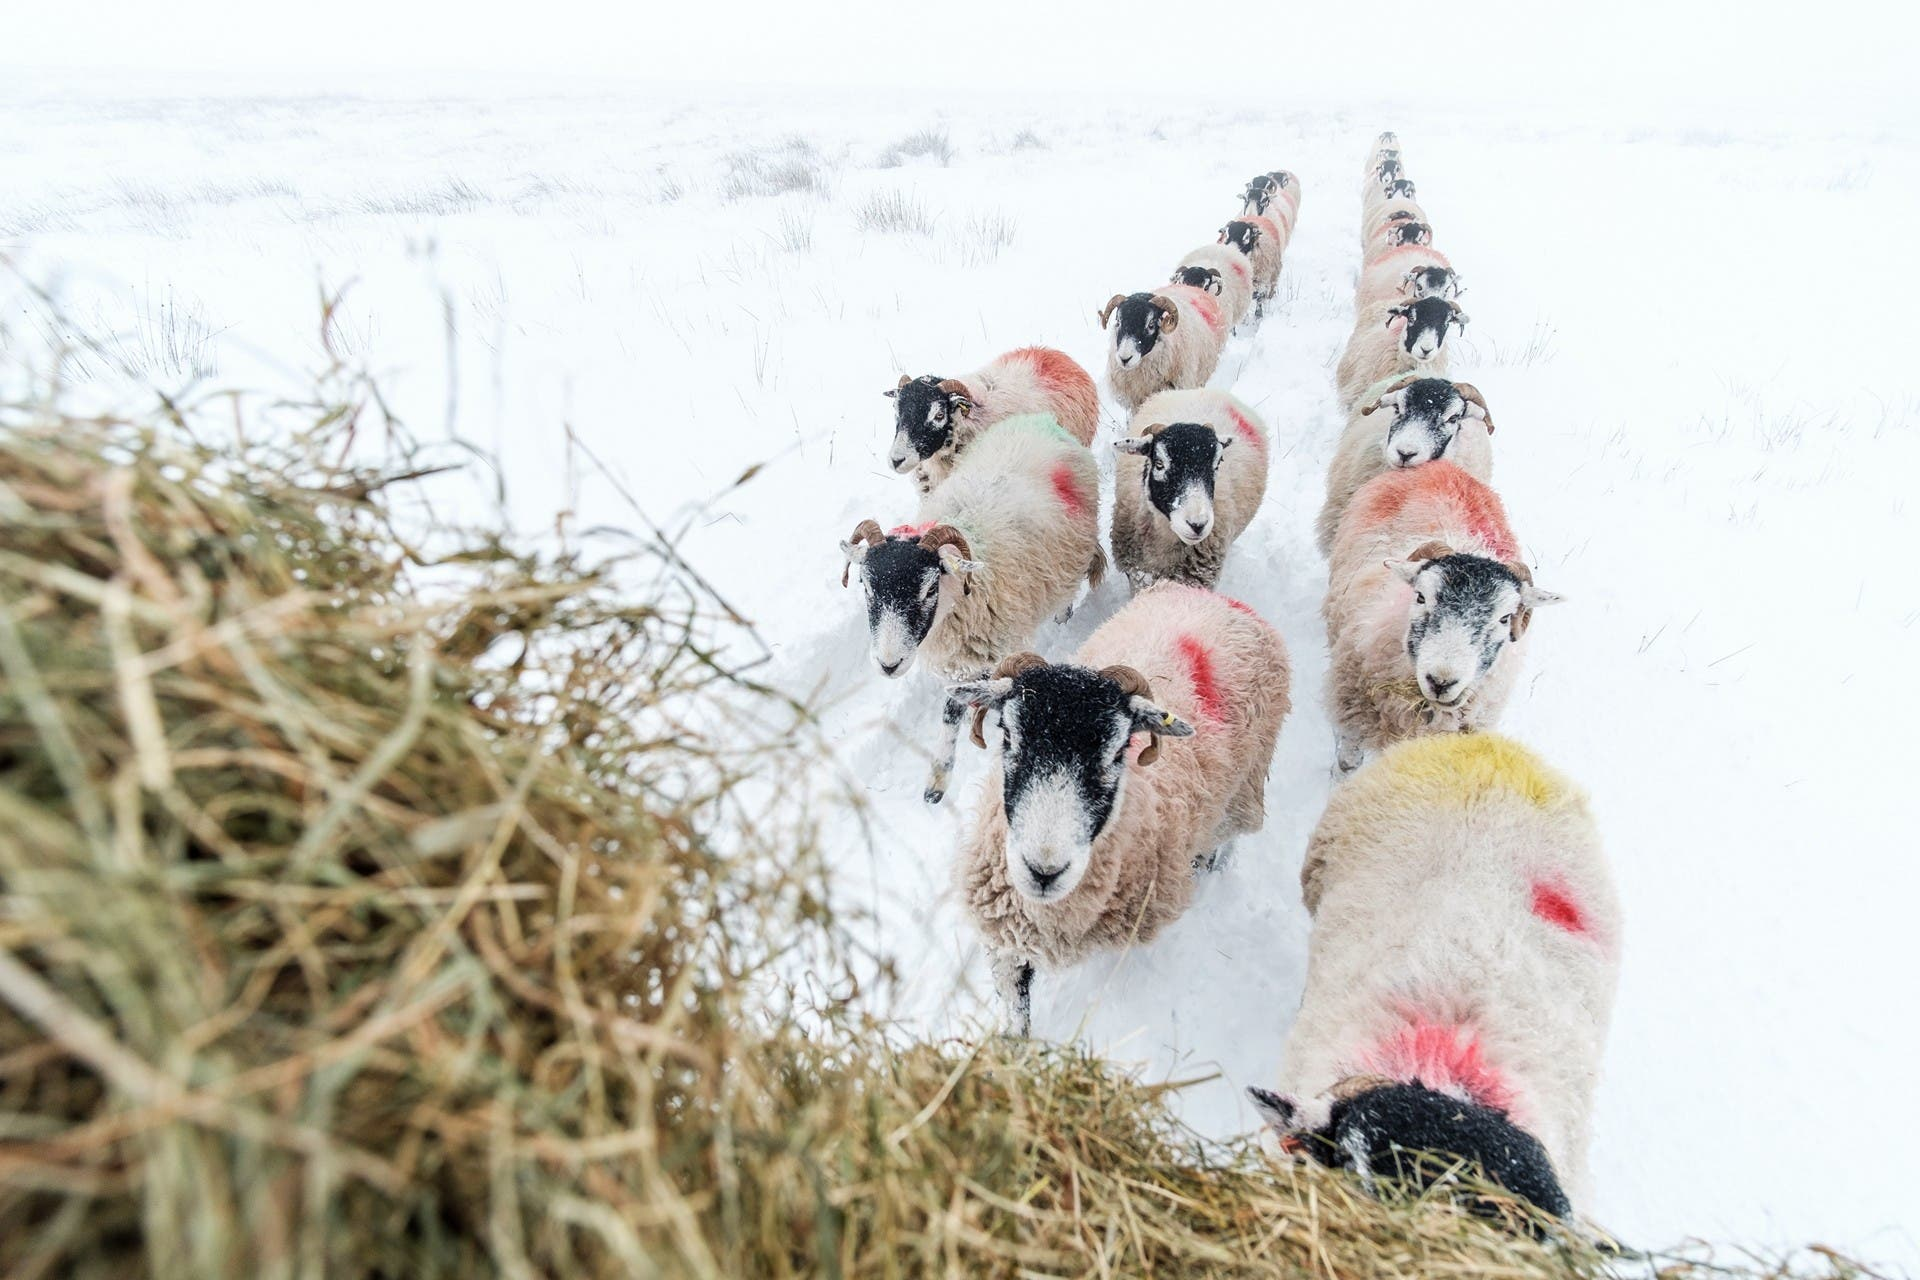 Guy Carpenter Documents the Beautiful Life of Sheep With No Photoshop